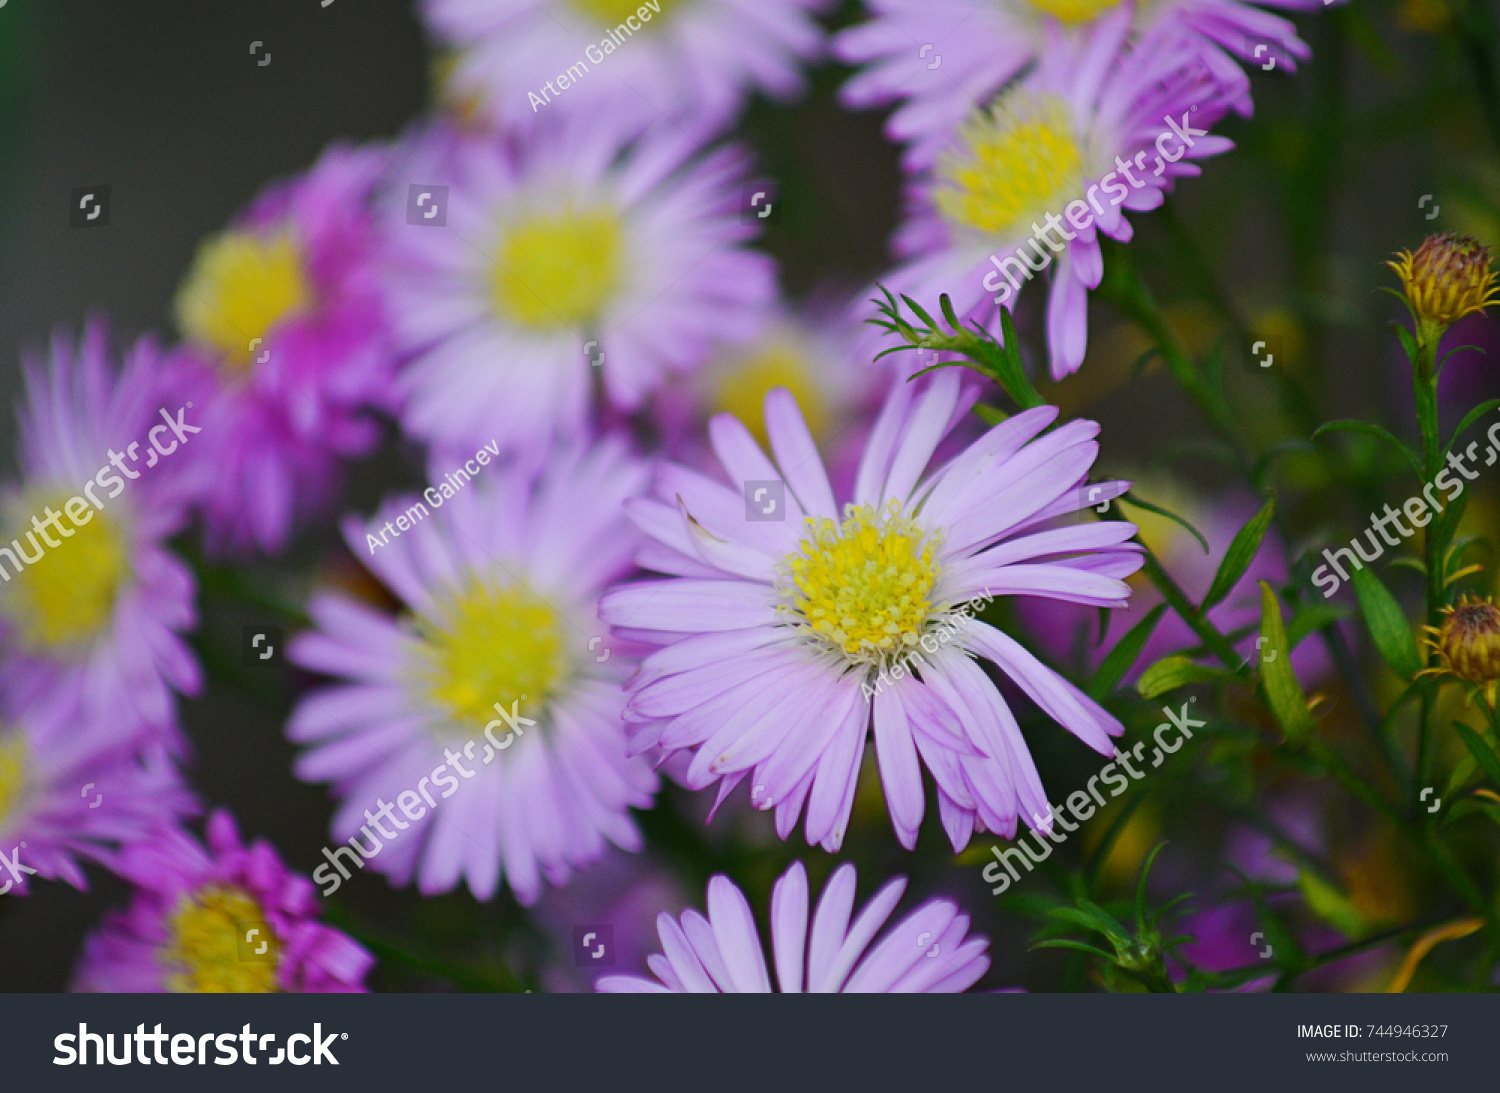 Purple Flowers The Flowers Of The Field Plants With Green Stem And